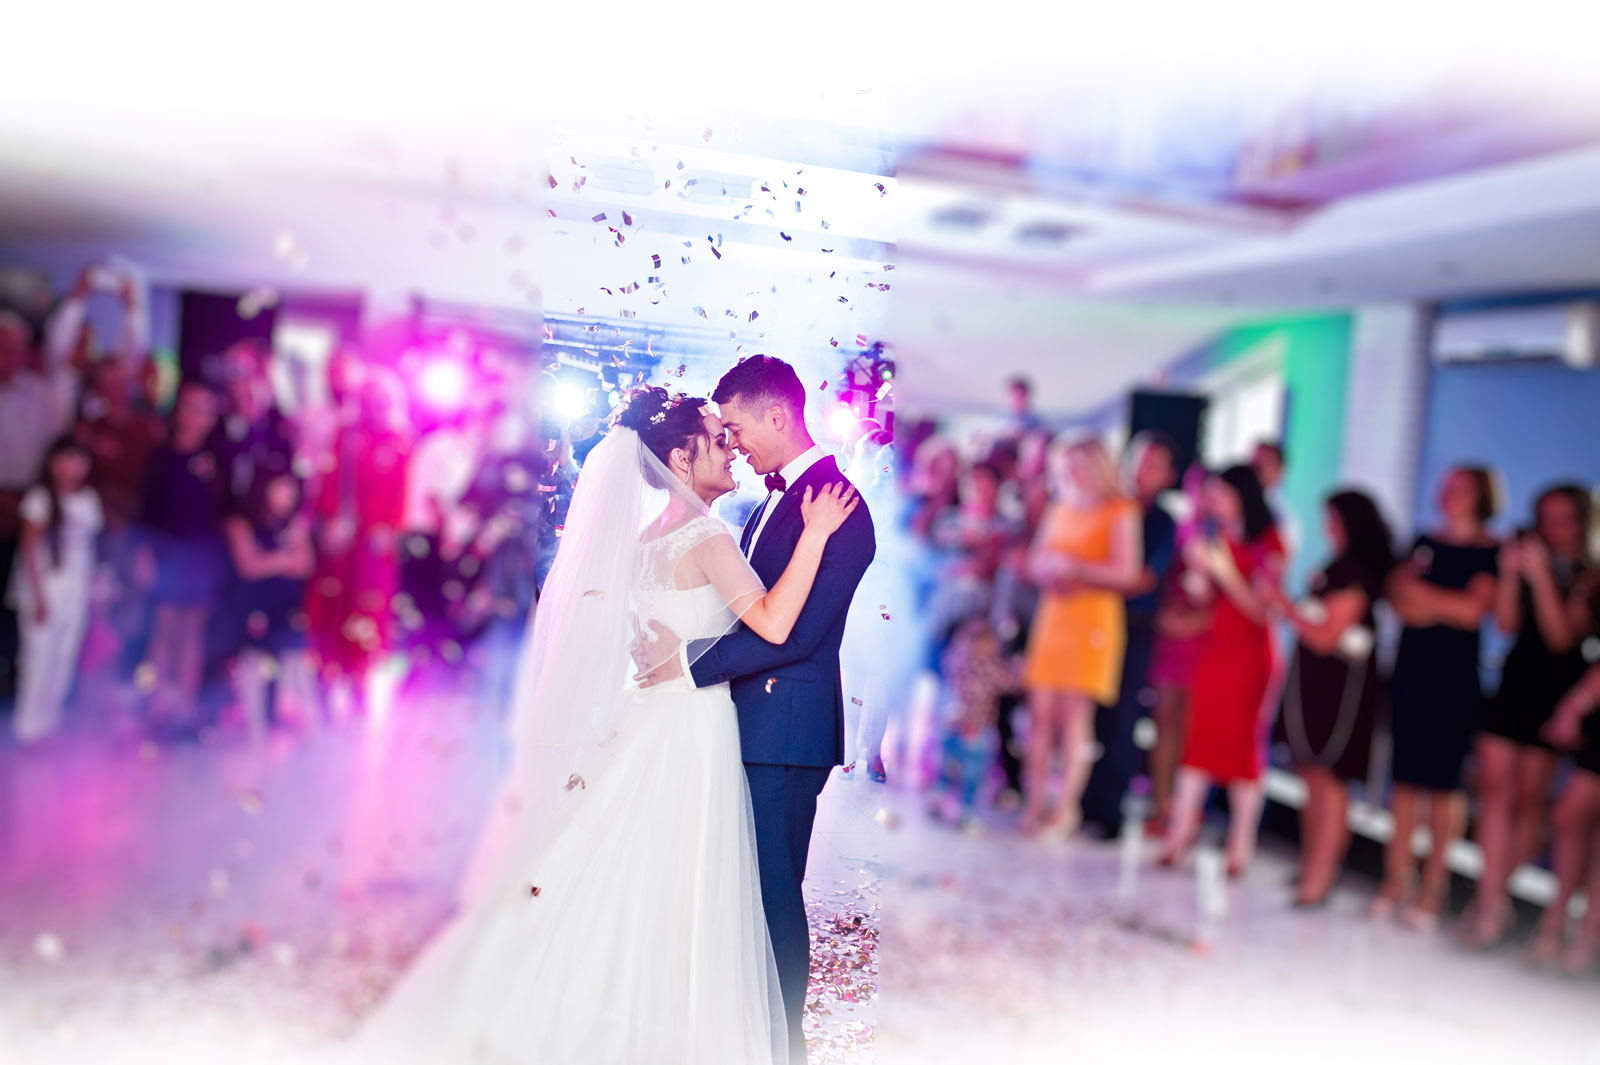 First Dance Wedding Choreography In Dallas And DFW